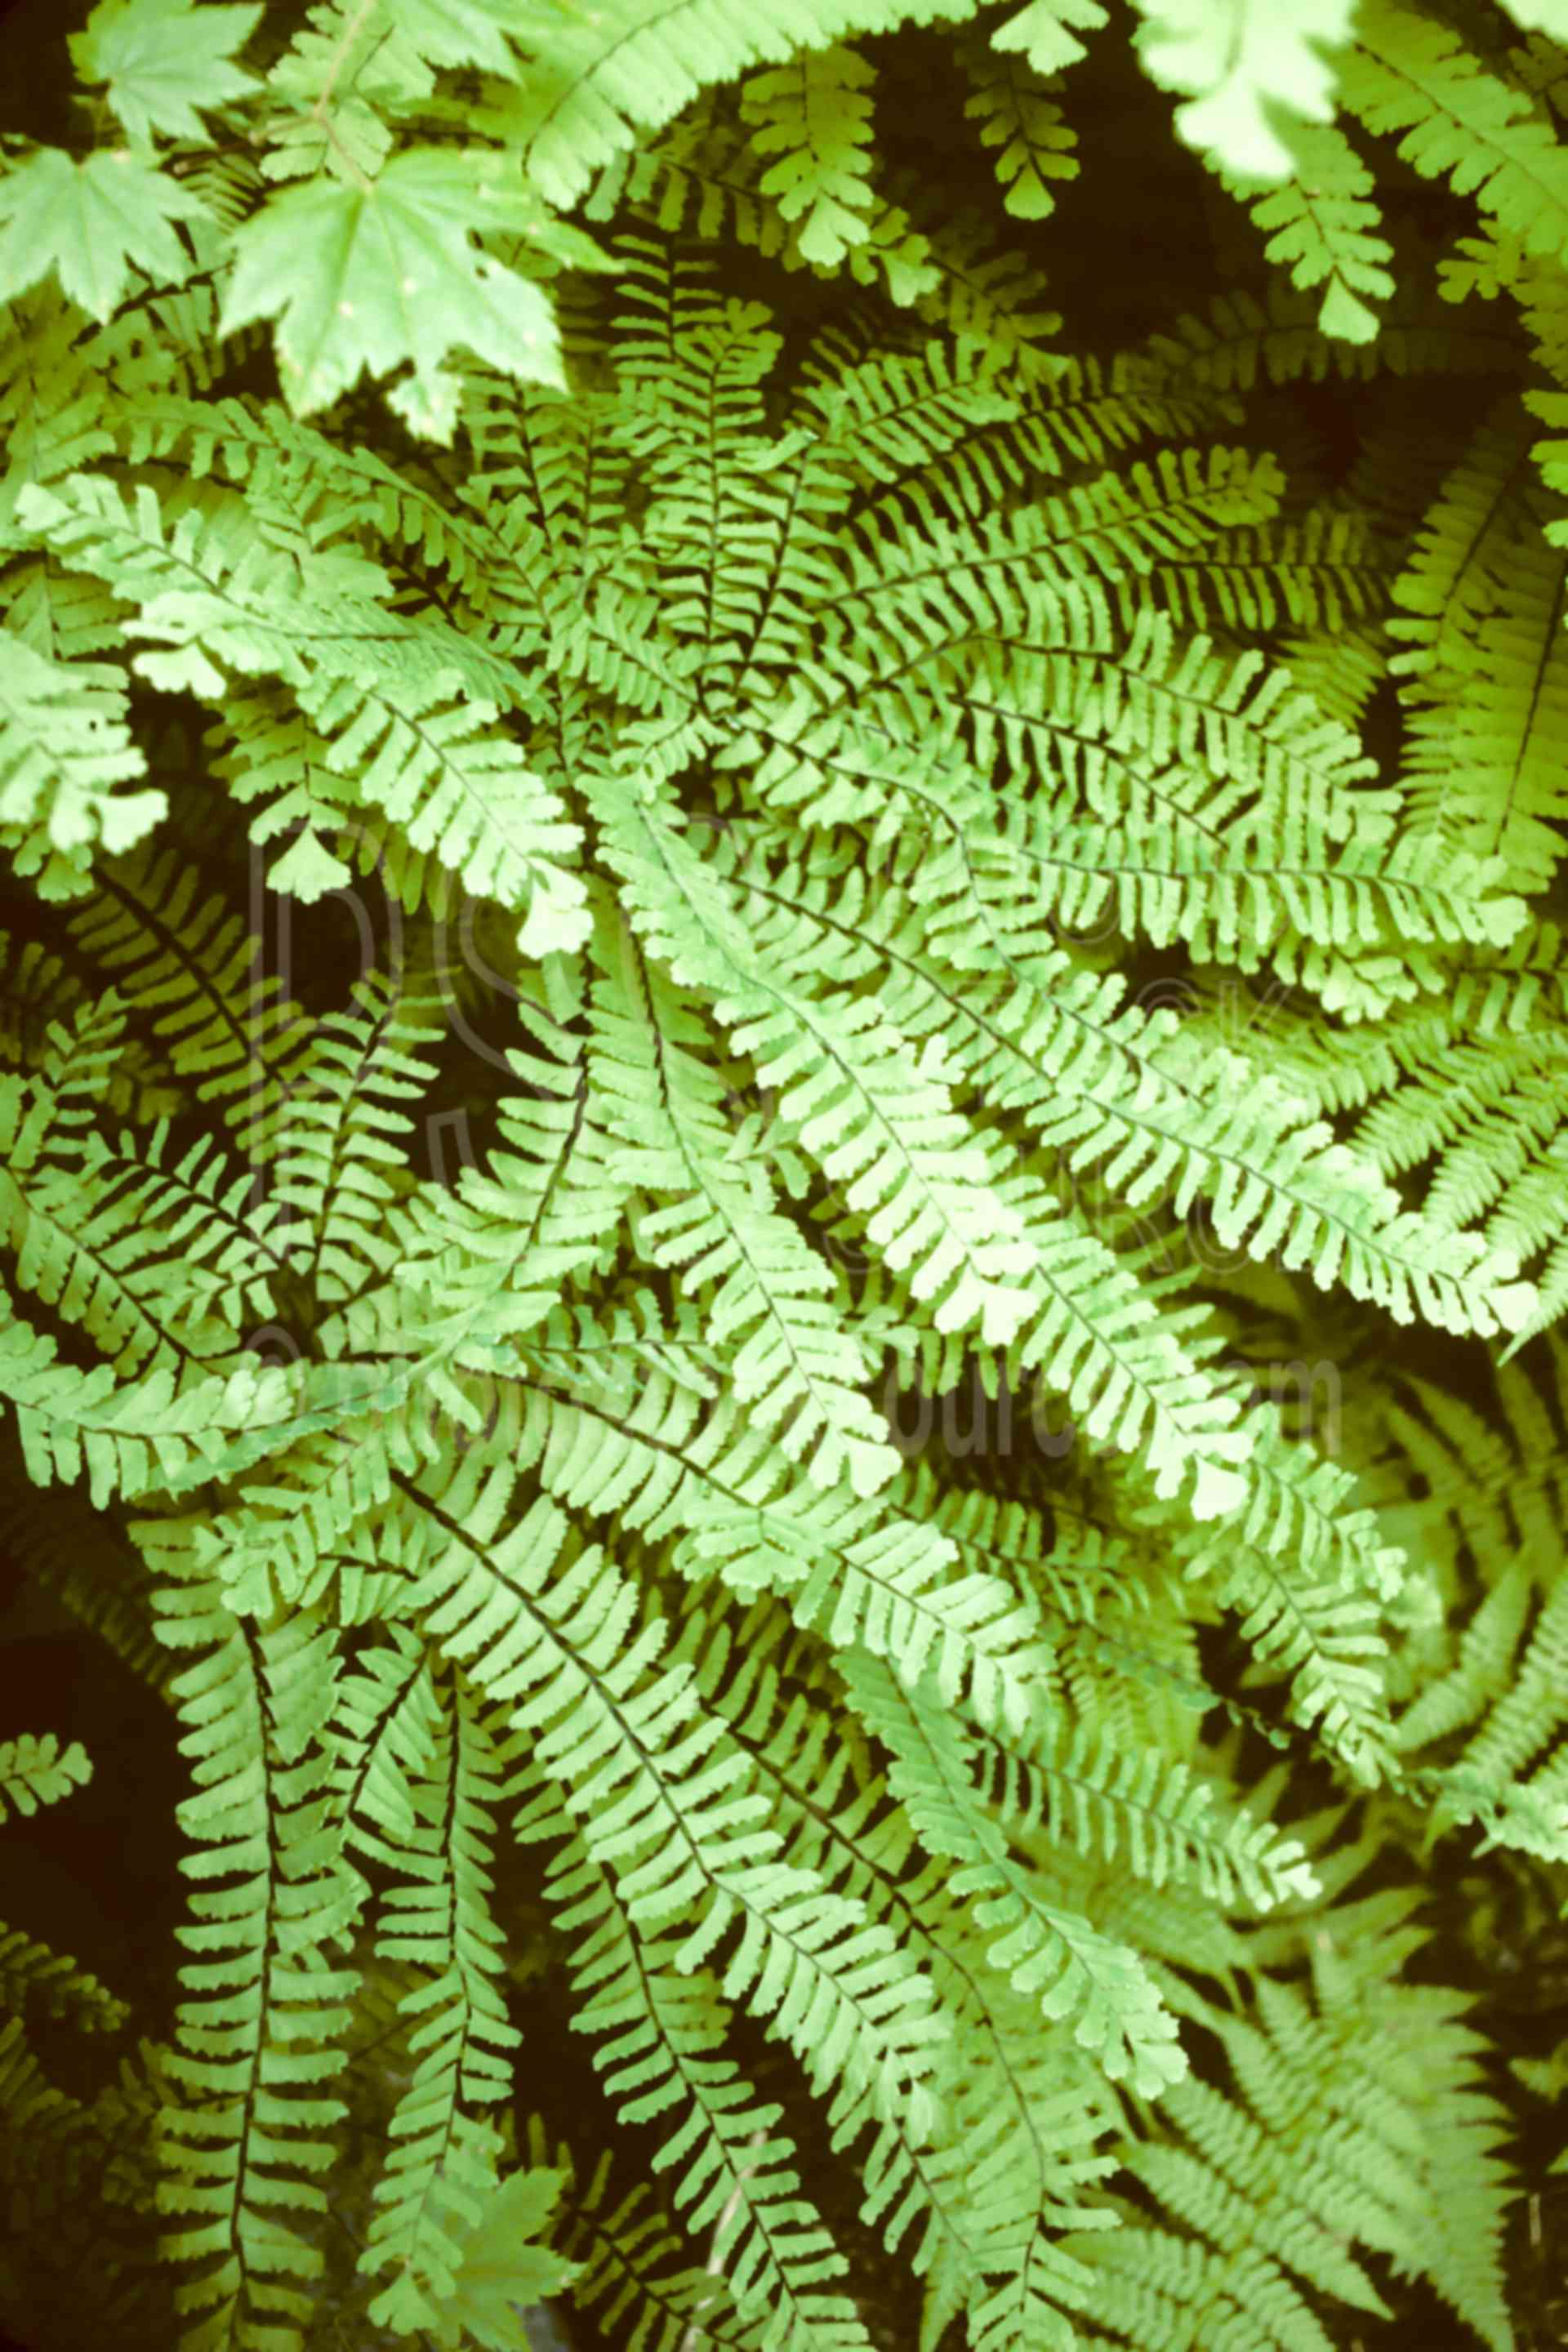 Angel Hair Fern,large view,large image view,large photo view,enlarged view,zoom in,high resolution,detail,big,large,full view,Angel hair fern,Oregon,USA,plant,fern,usas,plants